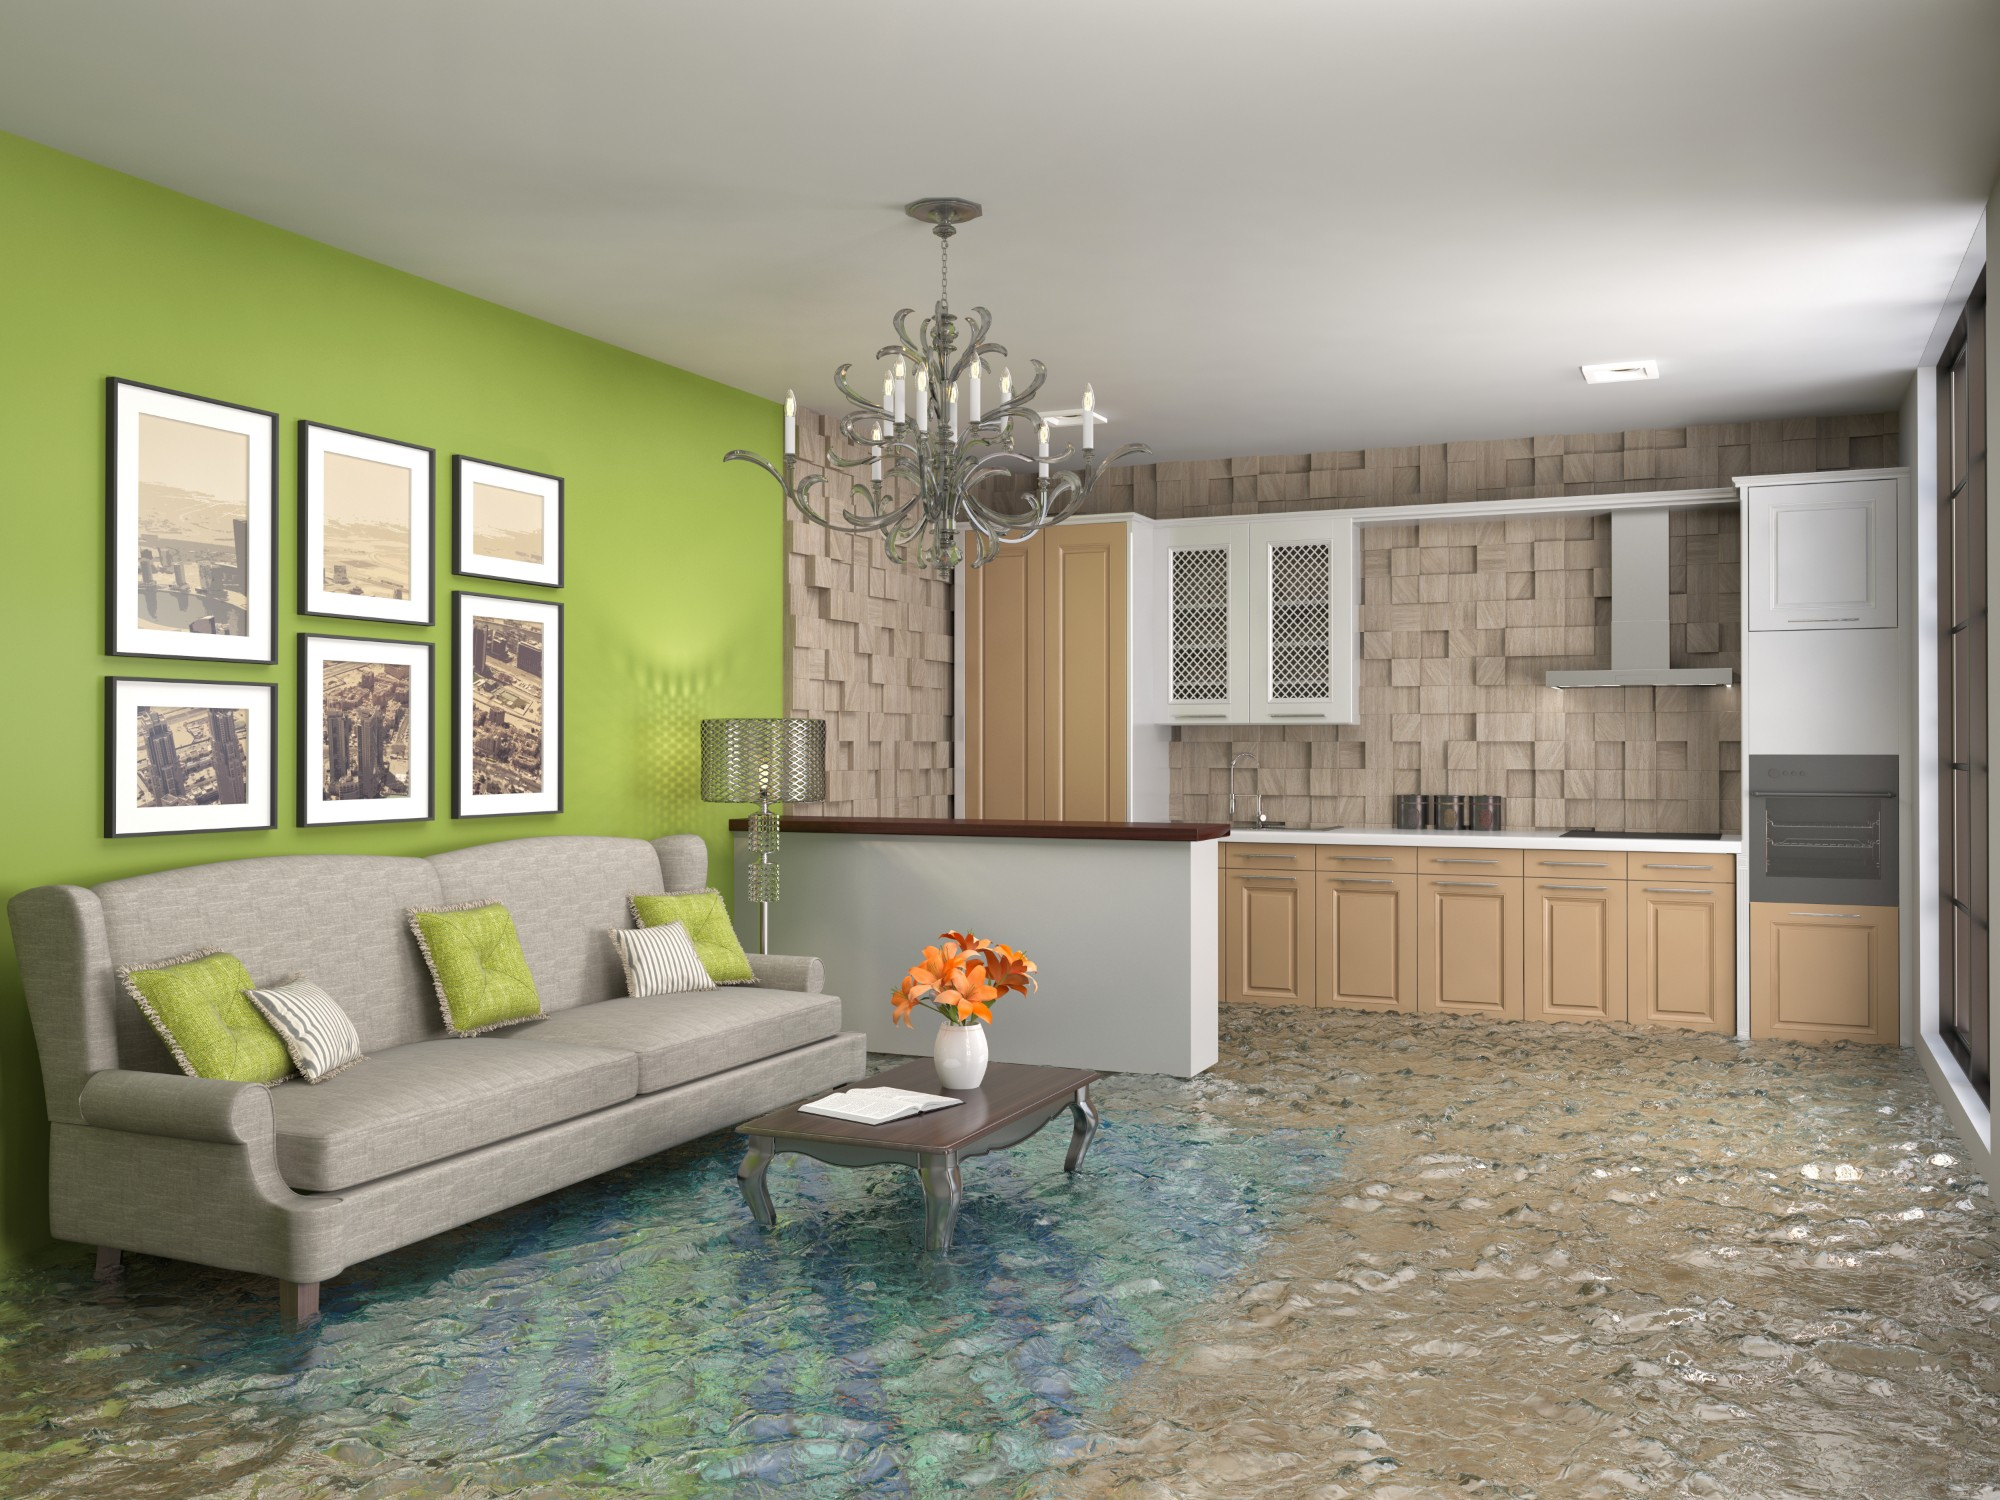 Water damage in New Jersey